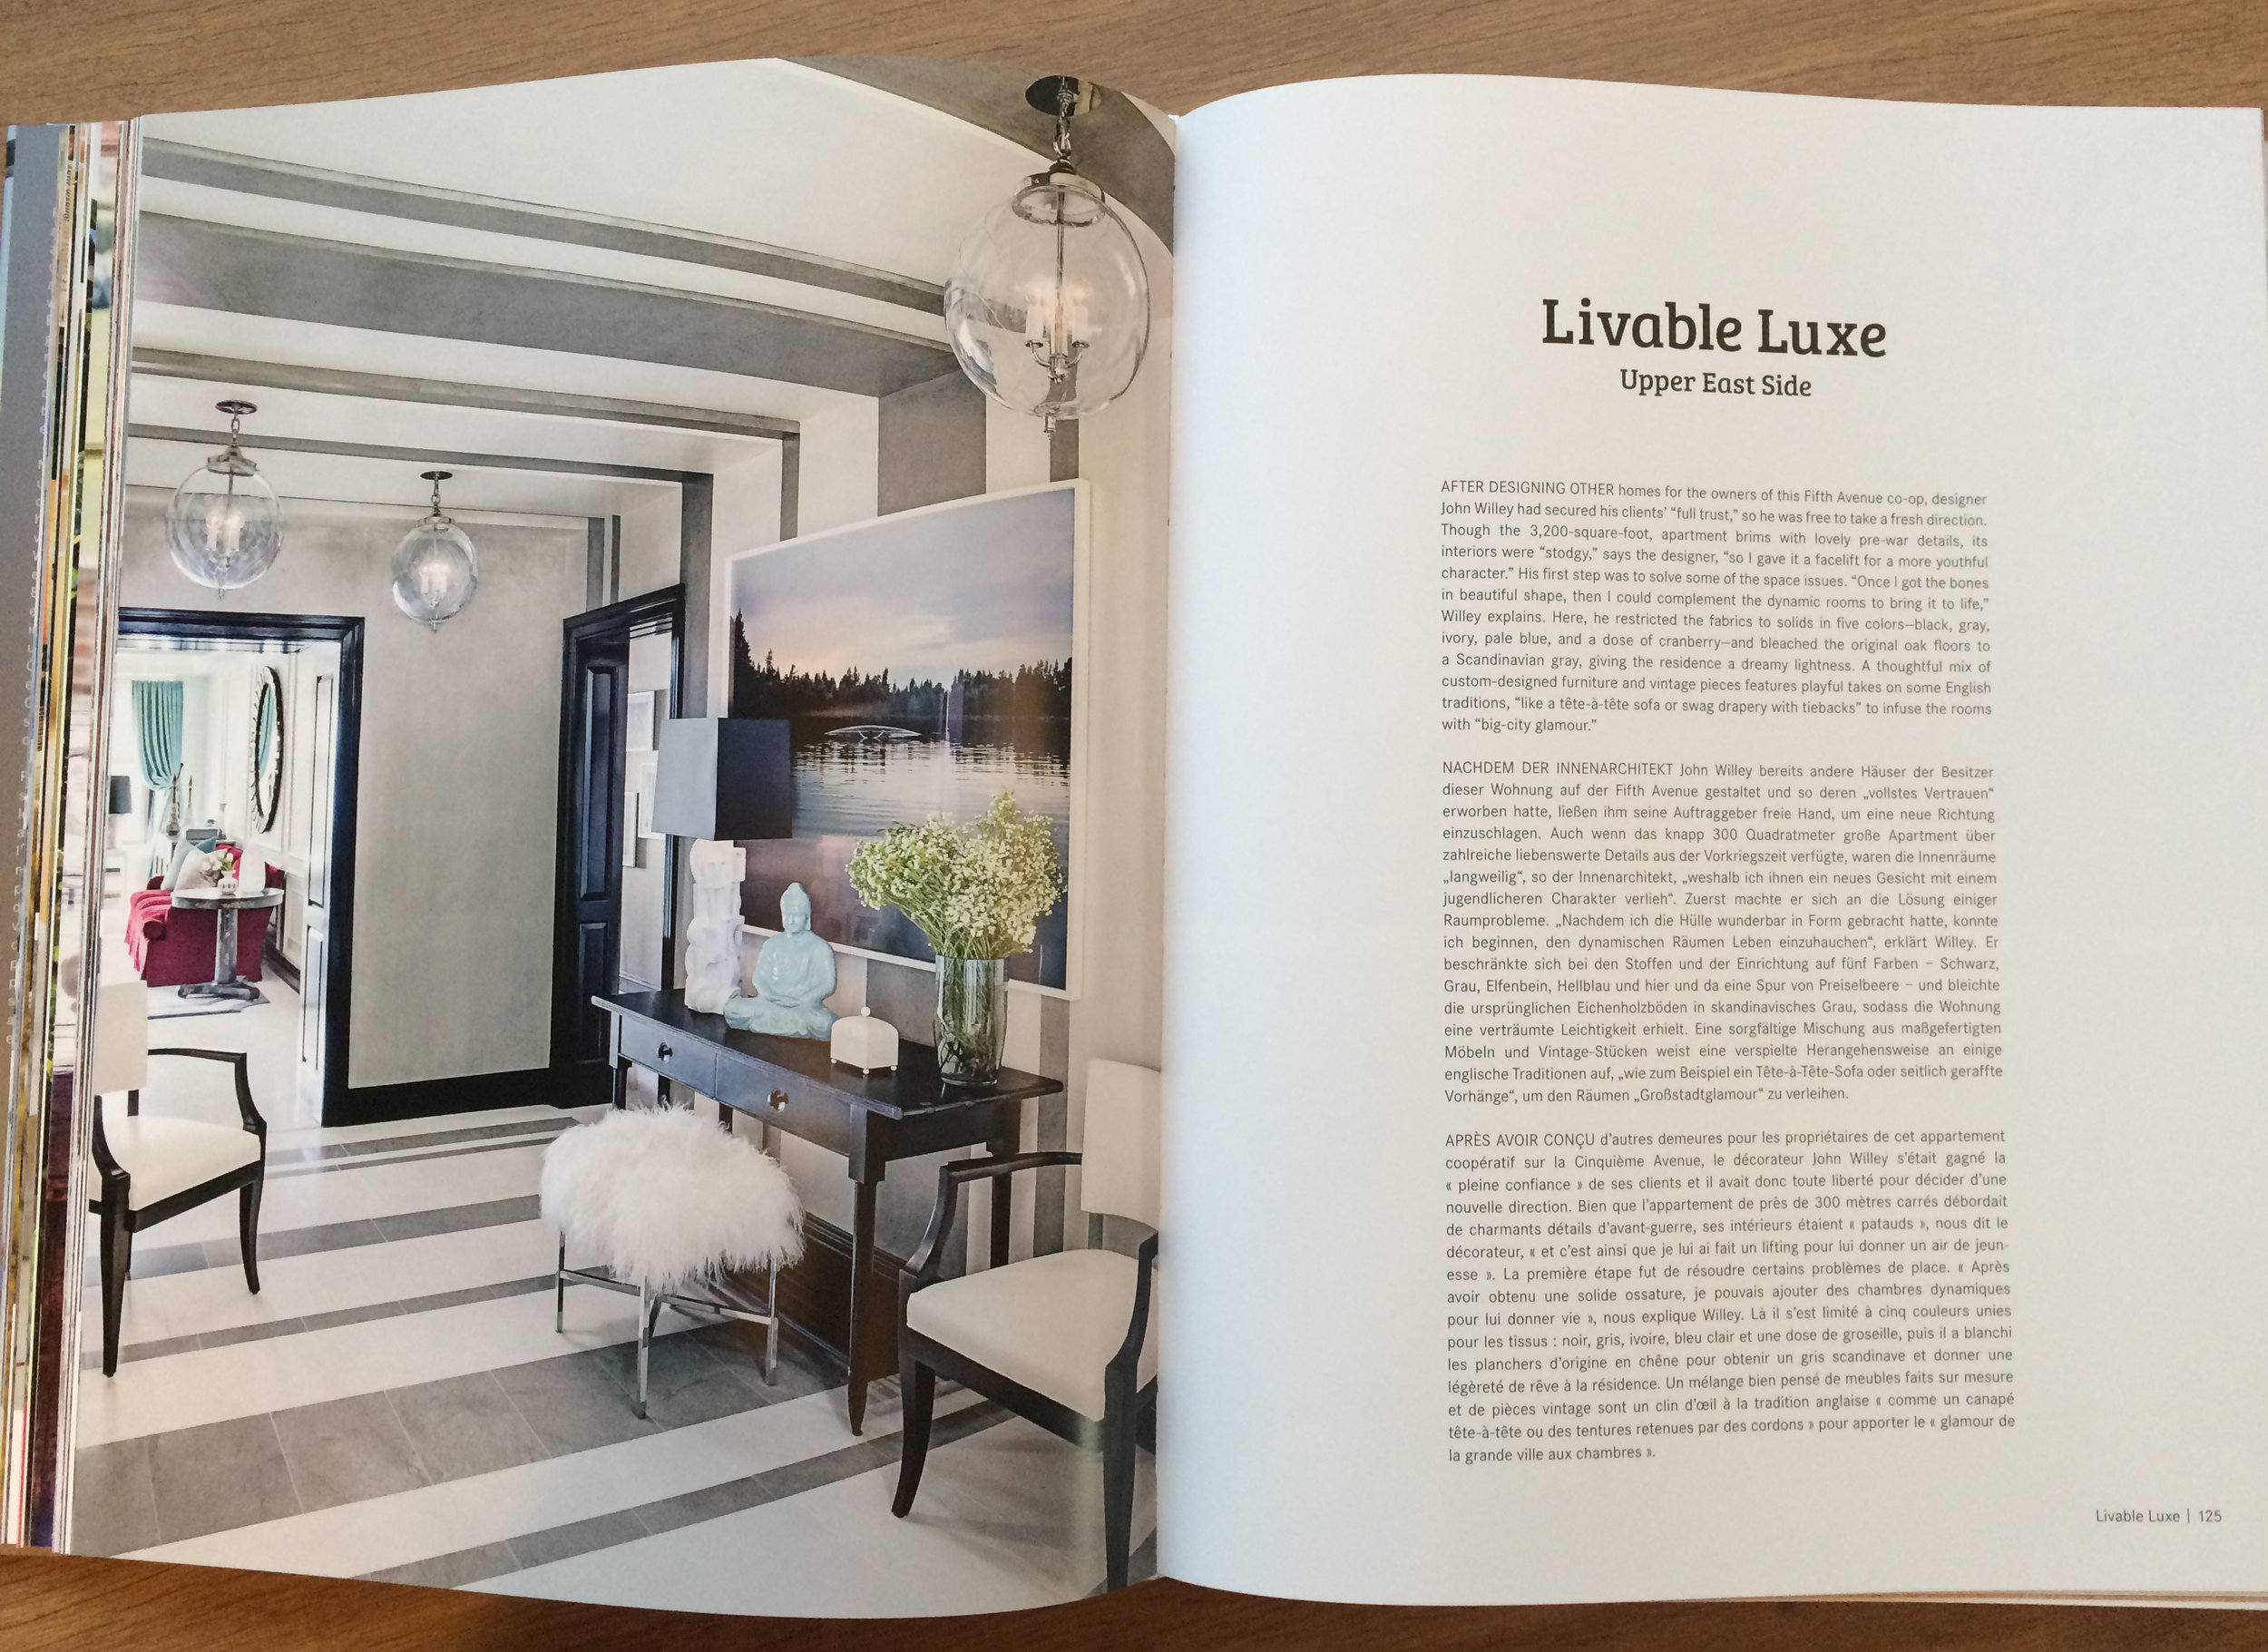 Living In Style New York Book 2014 - Page 7.JPG